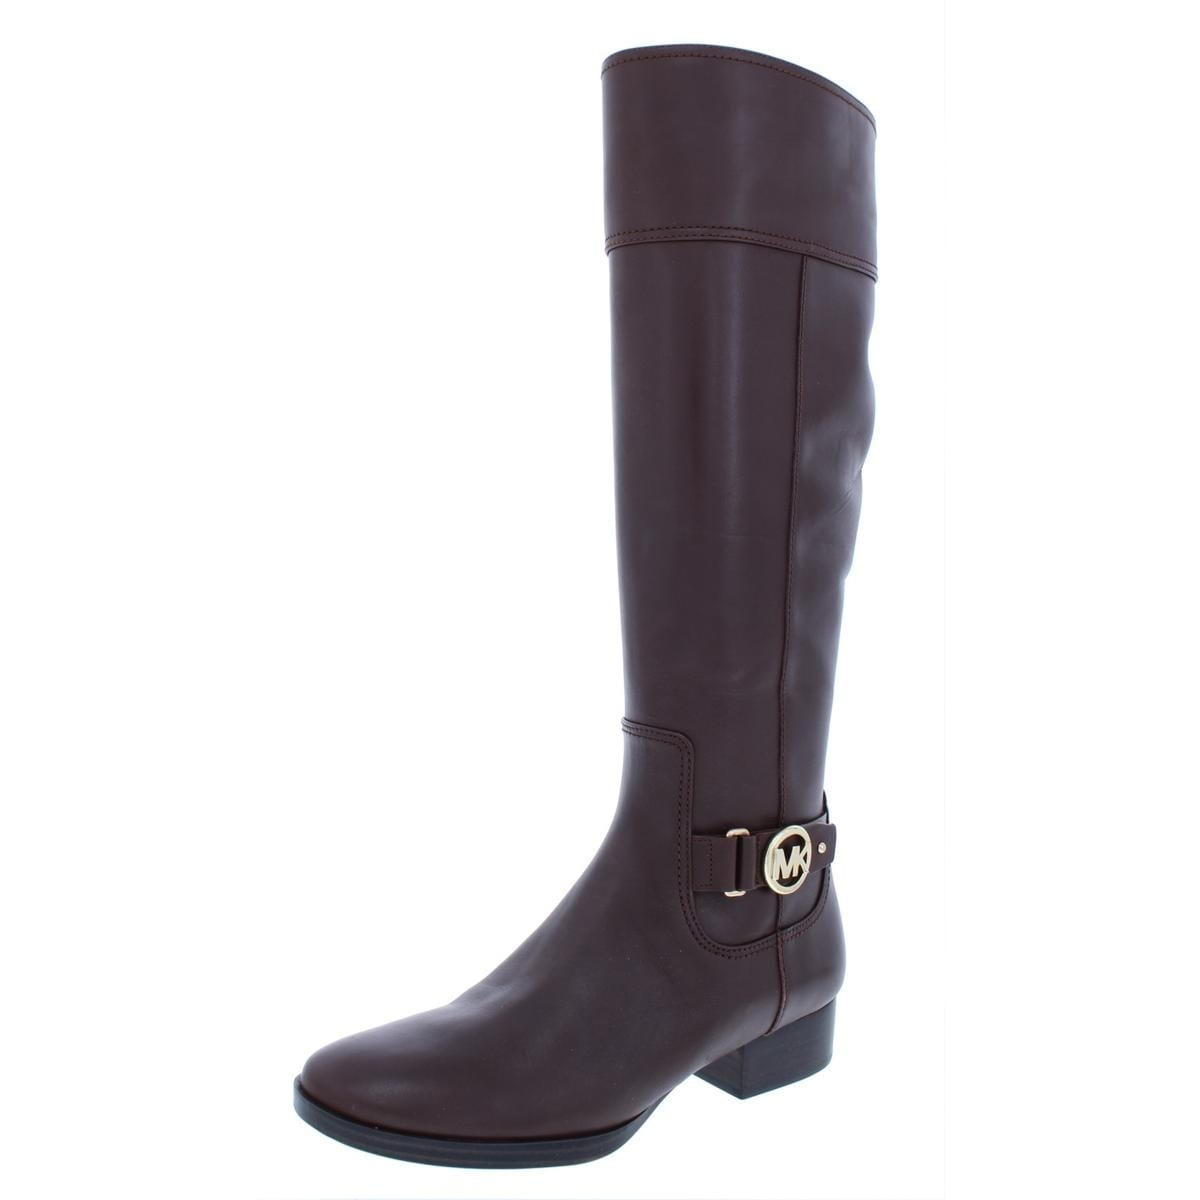 552d25a5a Shop MICHAEL Michael Kors Womens Harland Riding Boots Leather Knee High -  Free Shipping Today - Overstock - 23536088